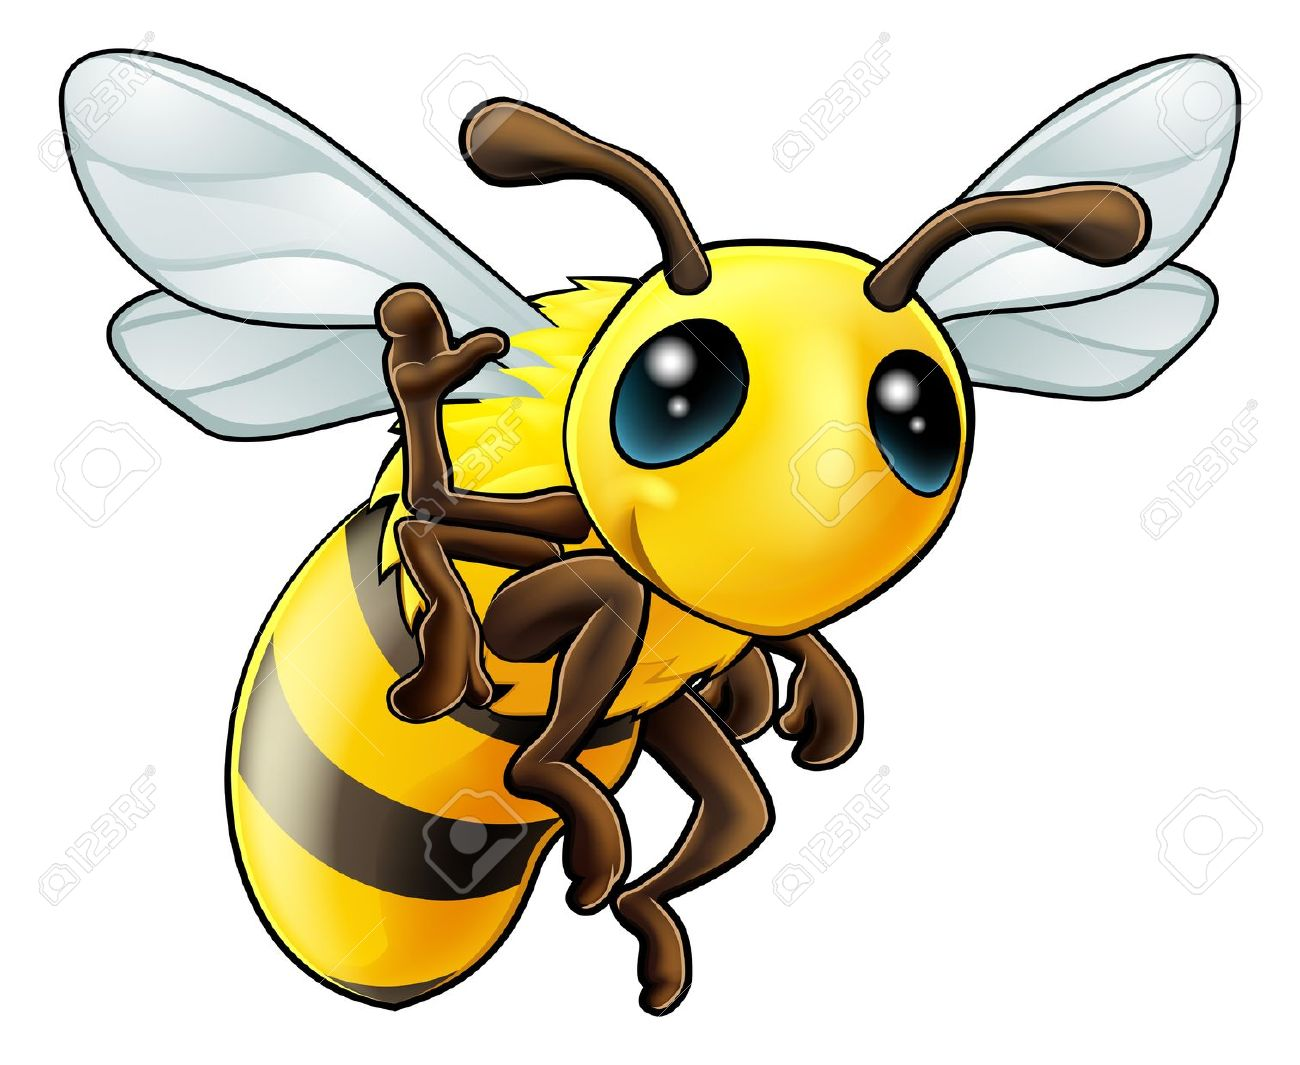 12,251 Wasp Stock Vector Illustration And Royalty Free Wasp Clipart.